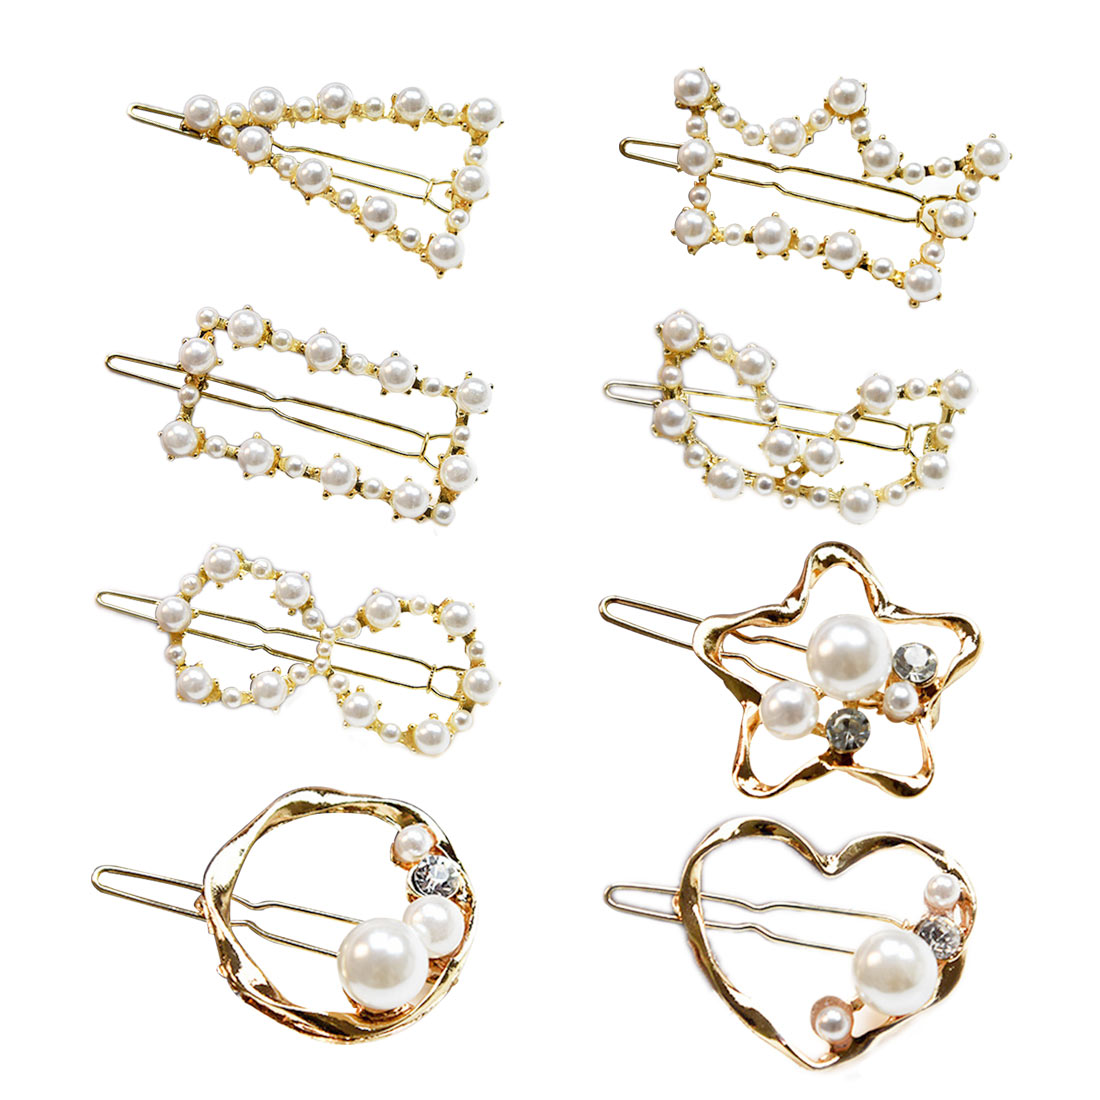 Women 39 s fashion pearl metal hairpin hair accessories girl pearl hairpin ladies sweet hairdressing tiara hair styling tools in Women 39 s Hair Accessories from Apparel Accessories